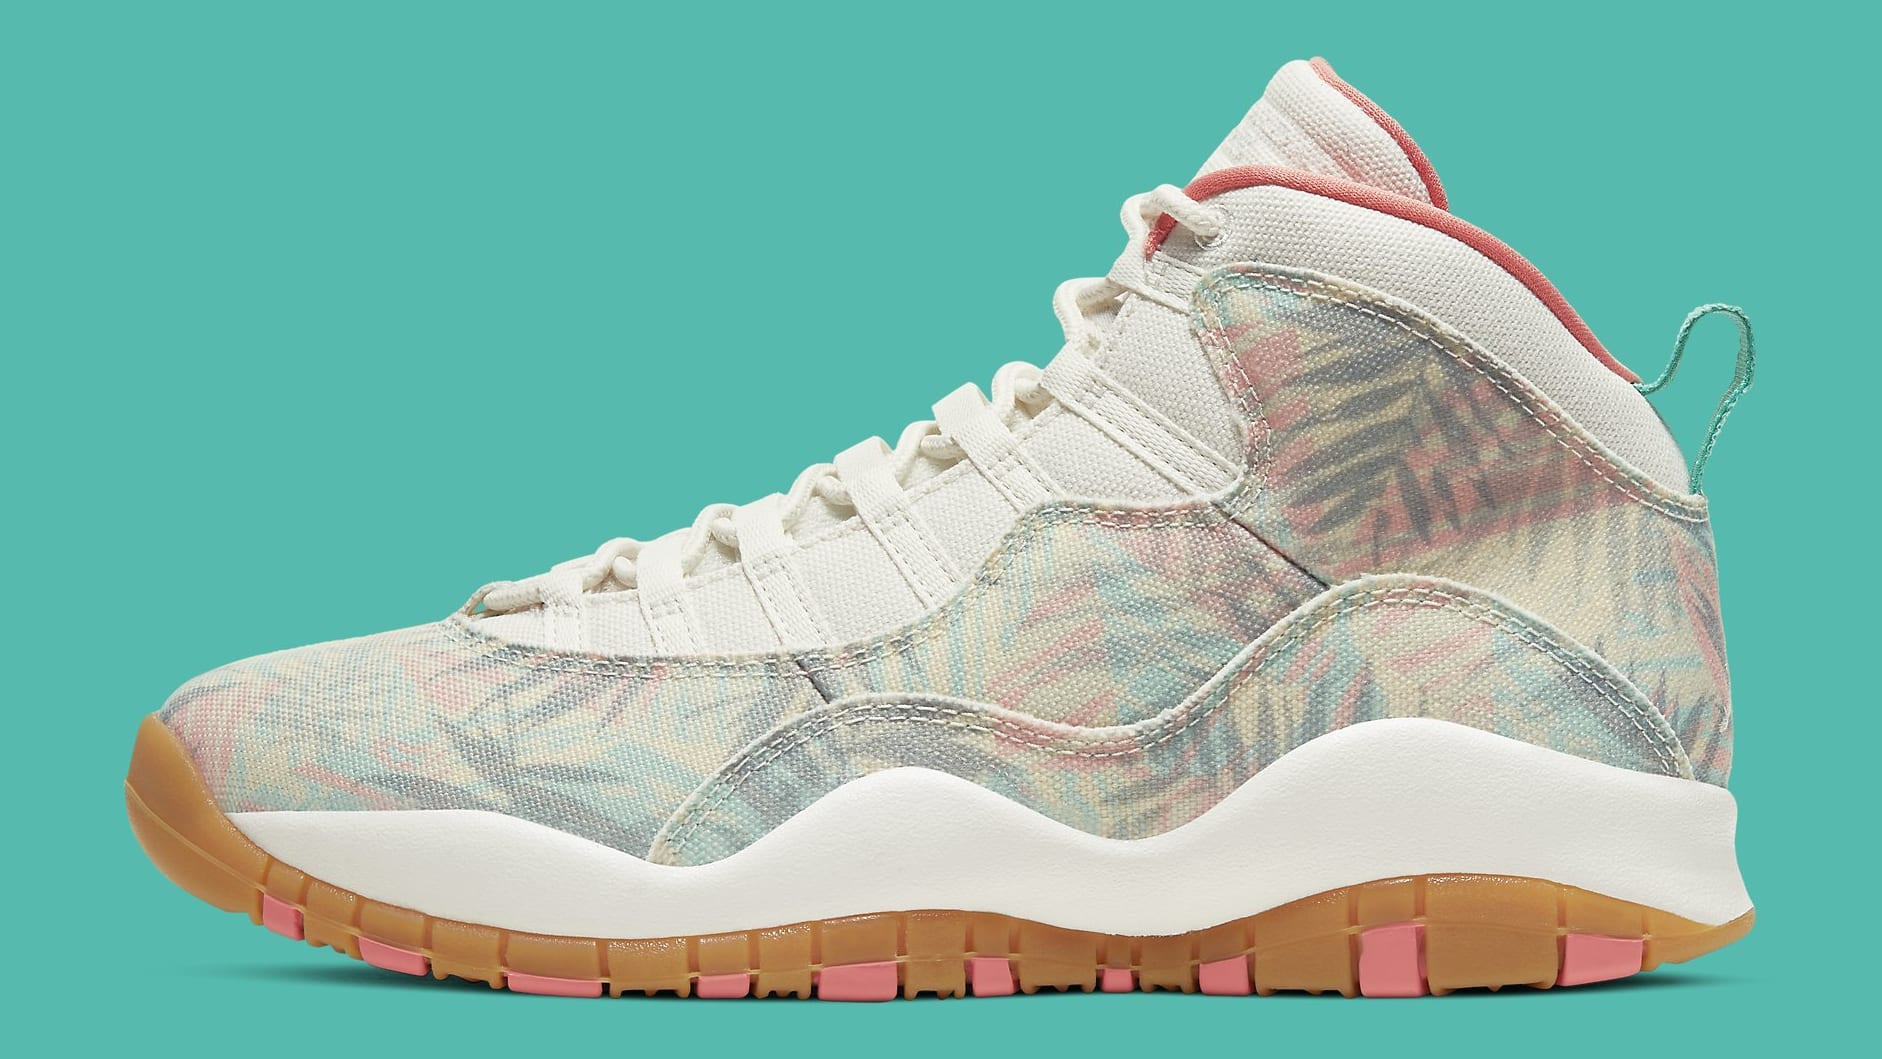 Air Jordan 10 Super Bowl LIV Release Date CV9776-900 Profile